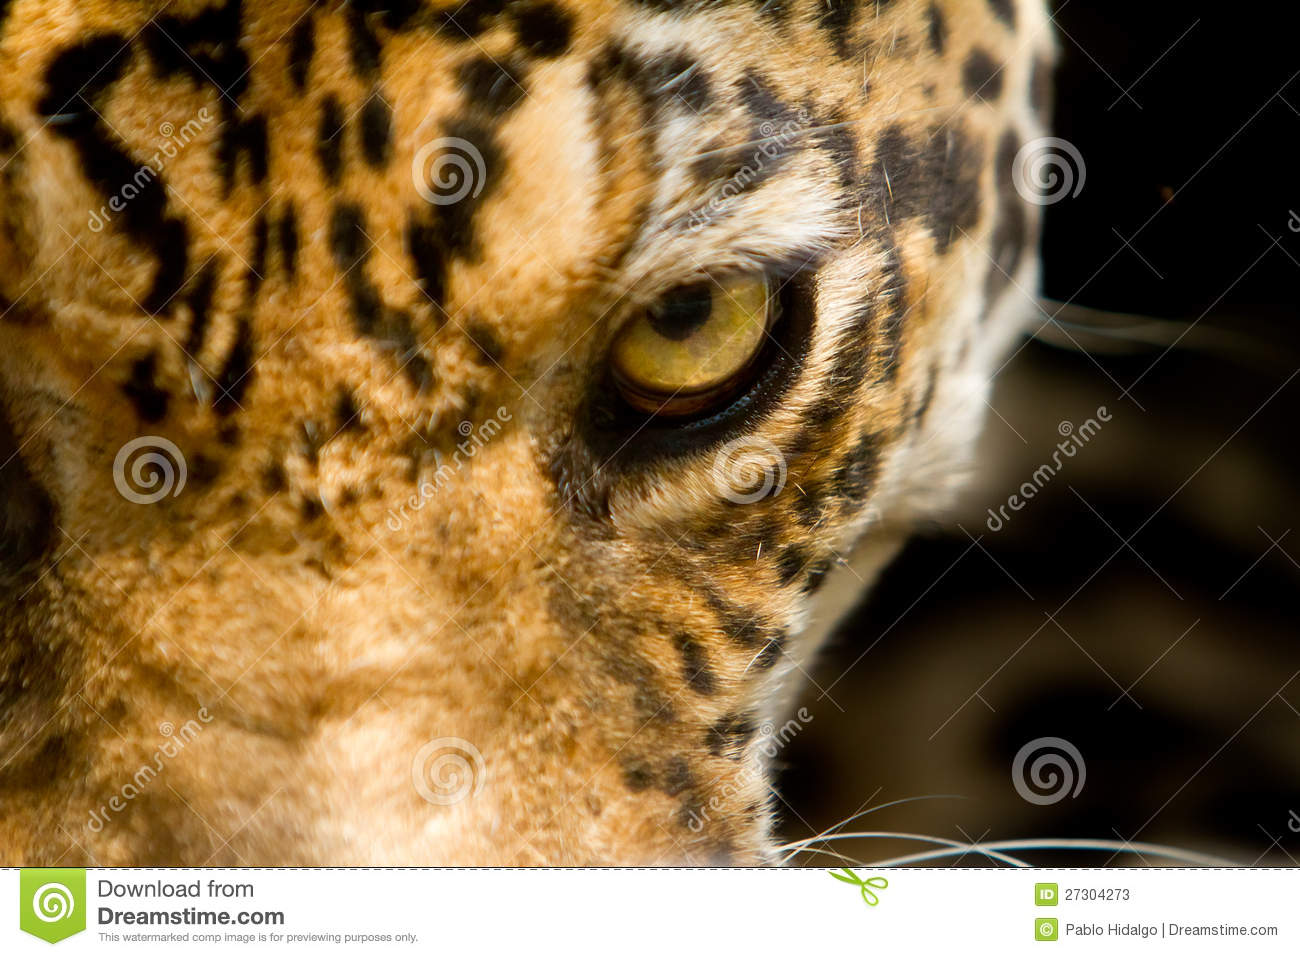 leopard eye close up - photo #16